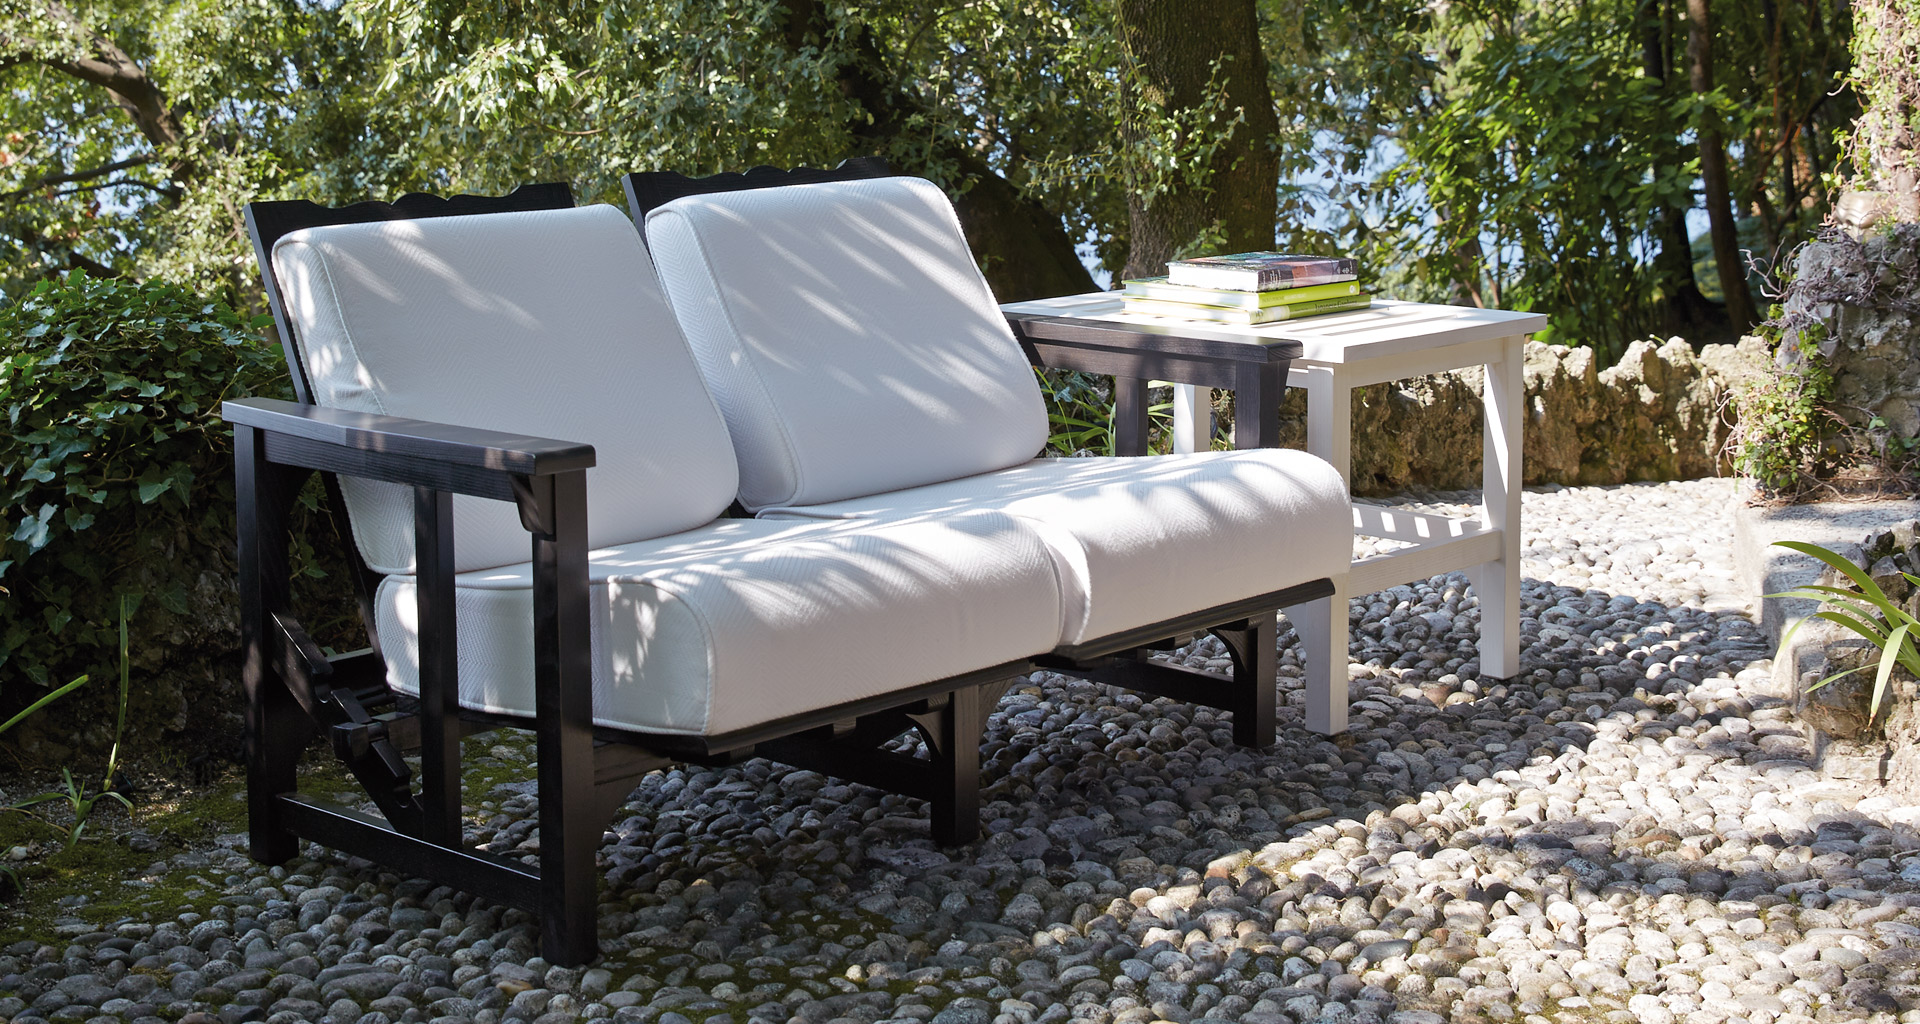 Tremezzo is an outdoor wooden small table from Promemoria's outdoor catalogue | Promemoria